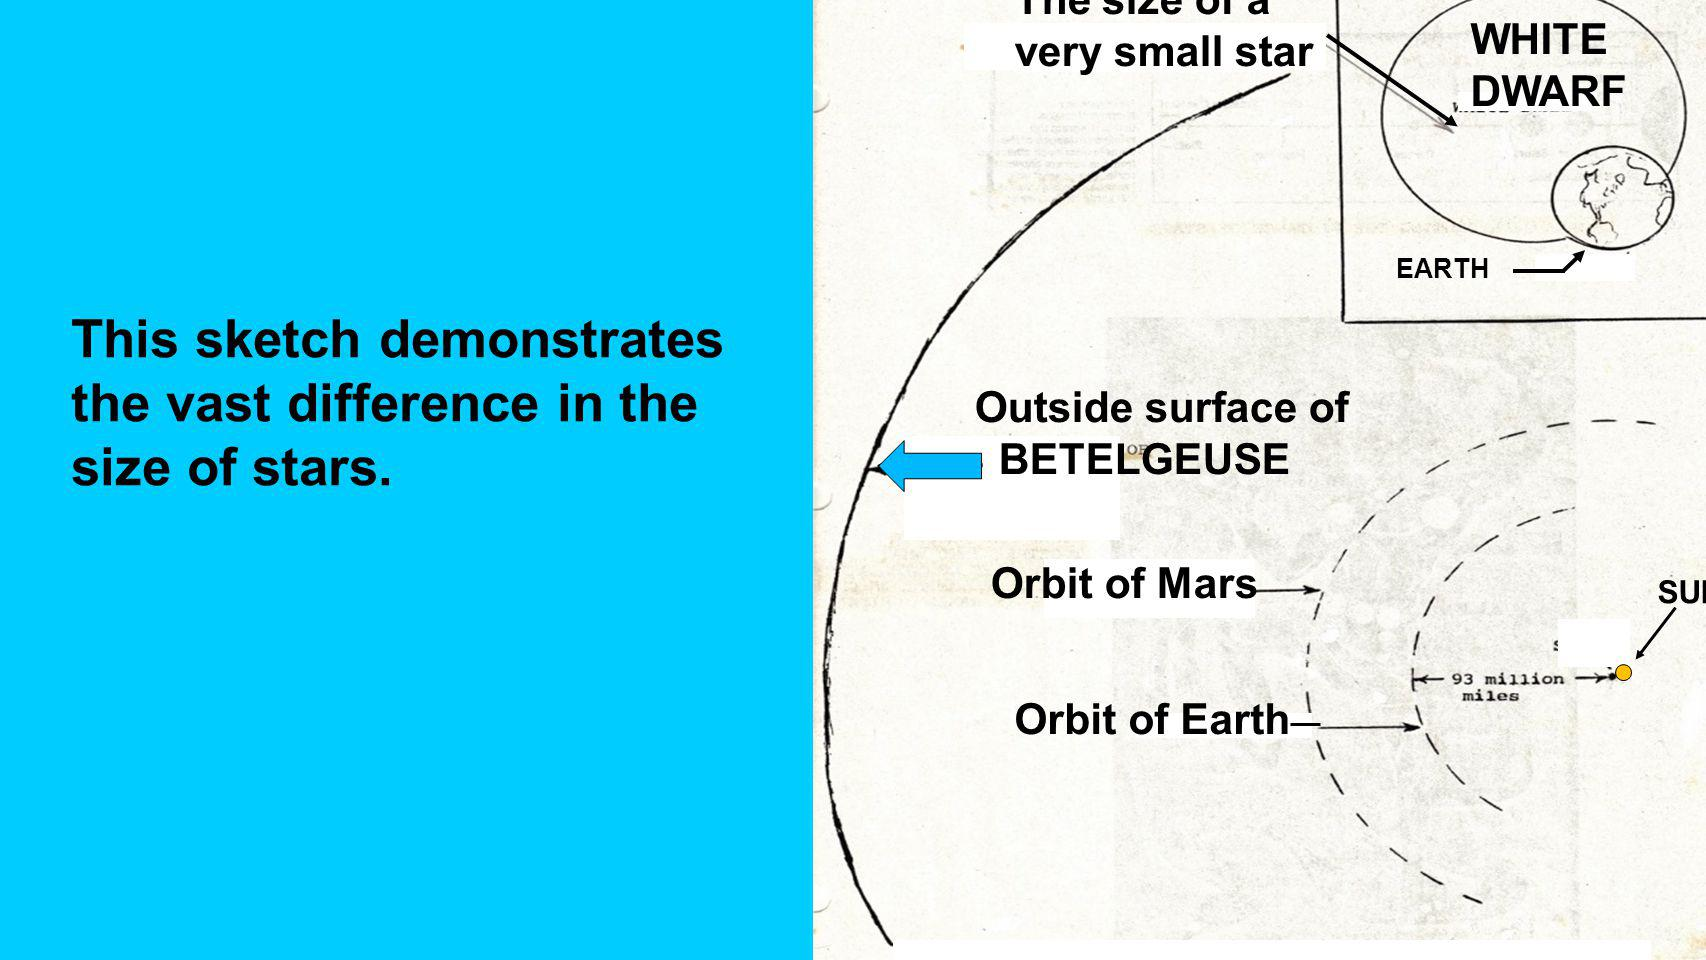 Orbit of Mars Orbit of Earth SUN Outside surface of BETELGEUSE WHITE DWARF EARTH This sketch demonstrates the vast difference in the size of stars.